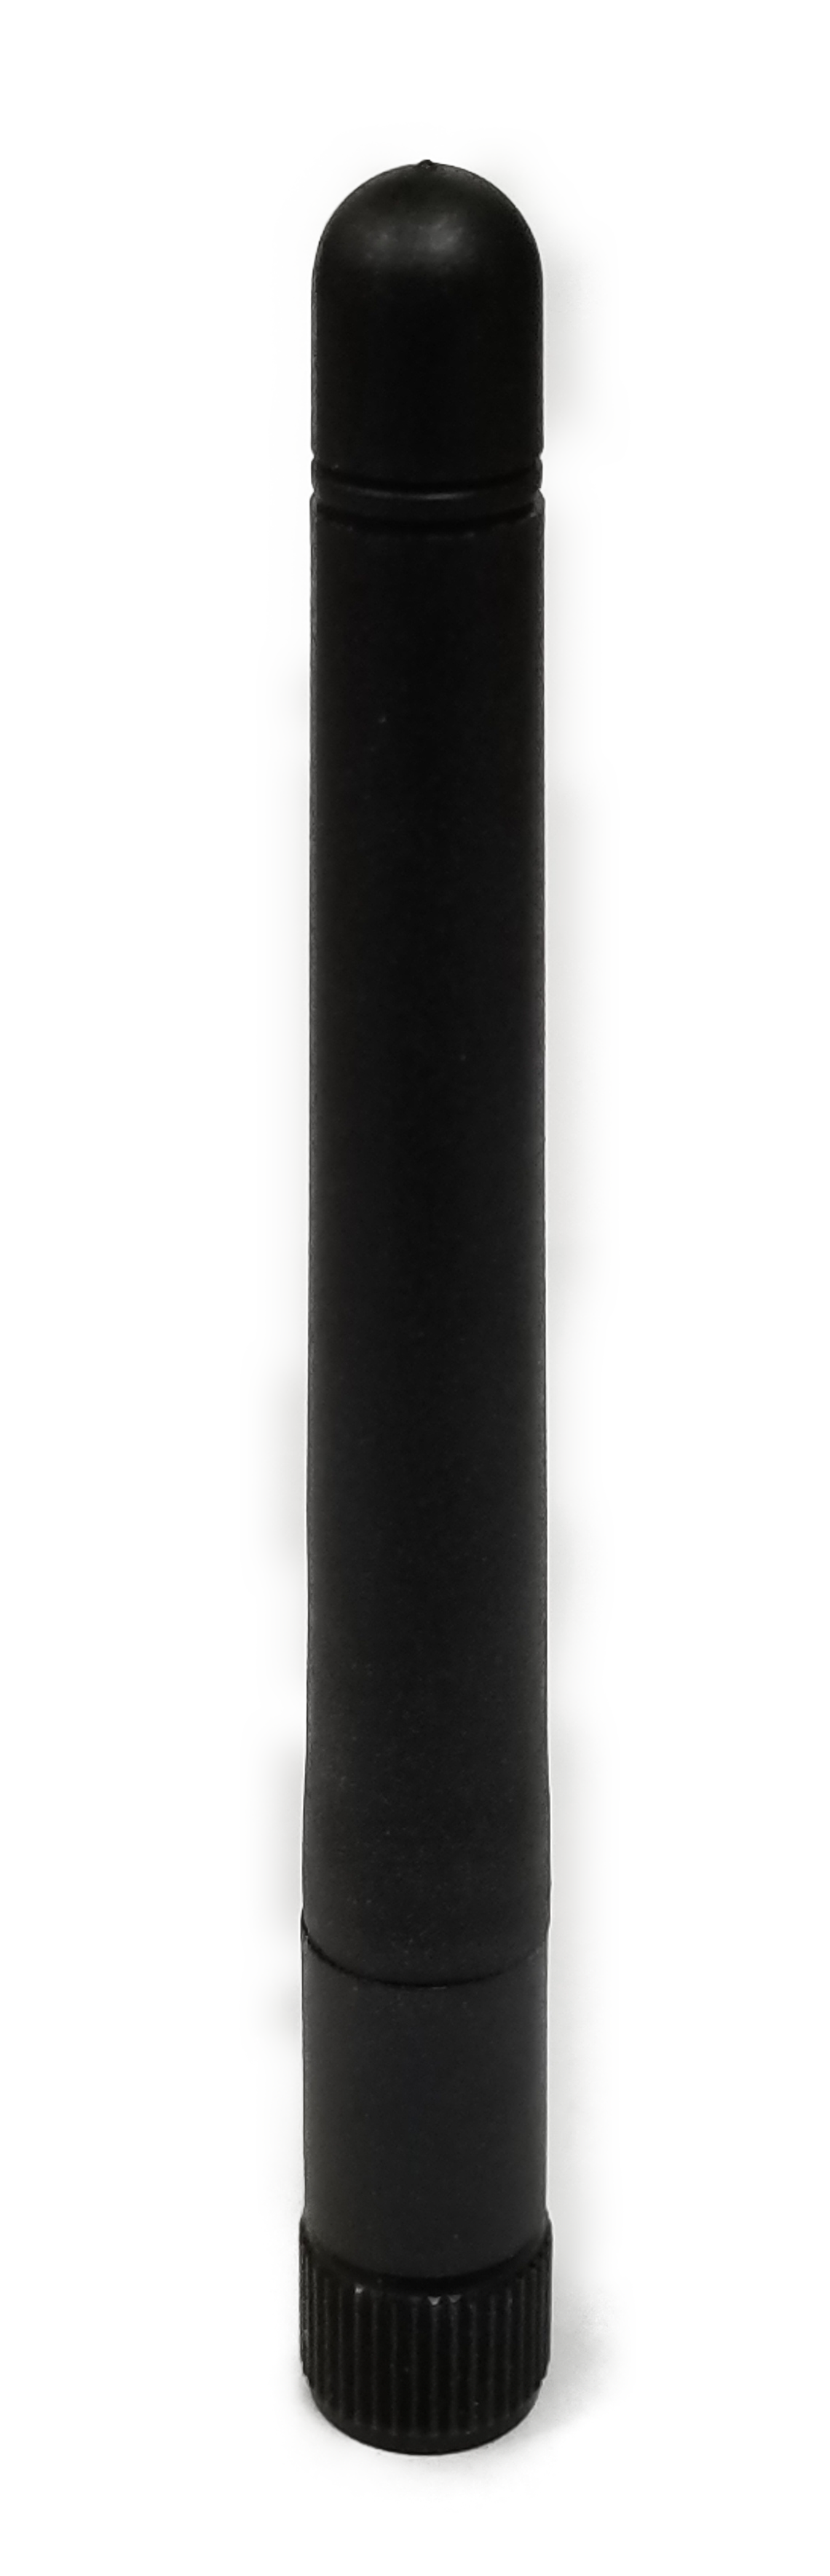 R380.500.125 - 2.4 GHZ ANTENNA WITH REVERSE POLARITY, SMA MALE